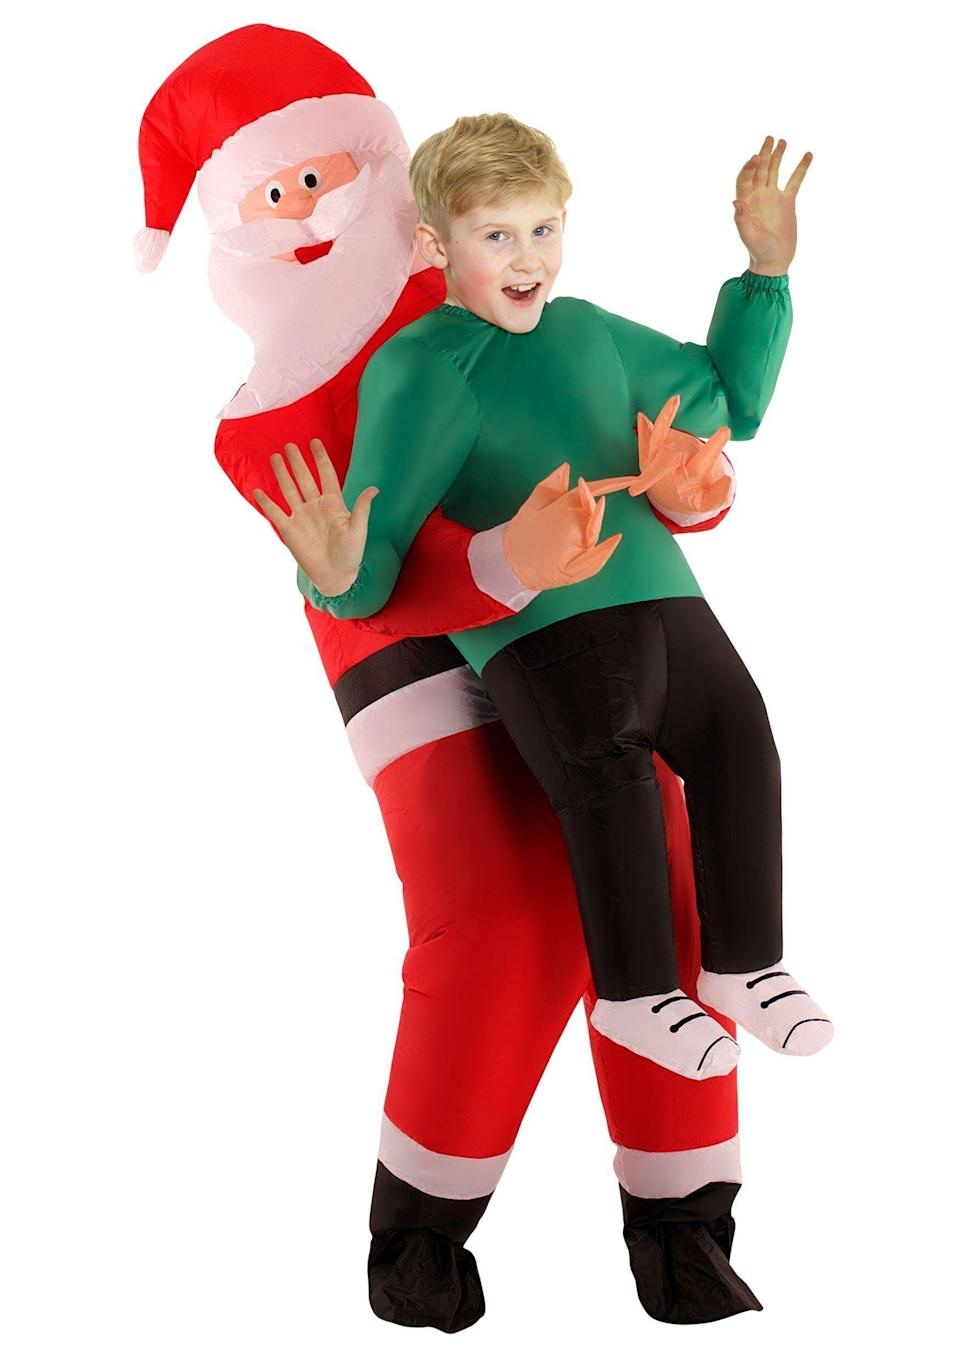 """Dressing up as Santa is a tradition for many people, but this costume allows you to be <a href=""""https://www.halloweencostumes.com/kids-santa-pick-me-up-costume.html"""" target=""""_blank"""" rel=""""noopener noreferrer"""">Santa as well as somebody who has to deal with him awkwardly invading your personal space.</a>Progress!"""